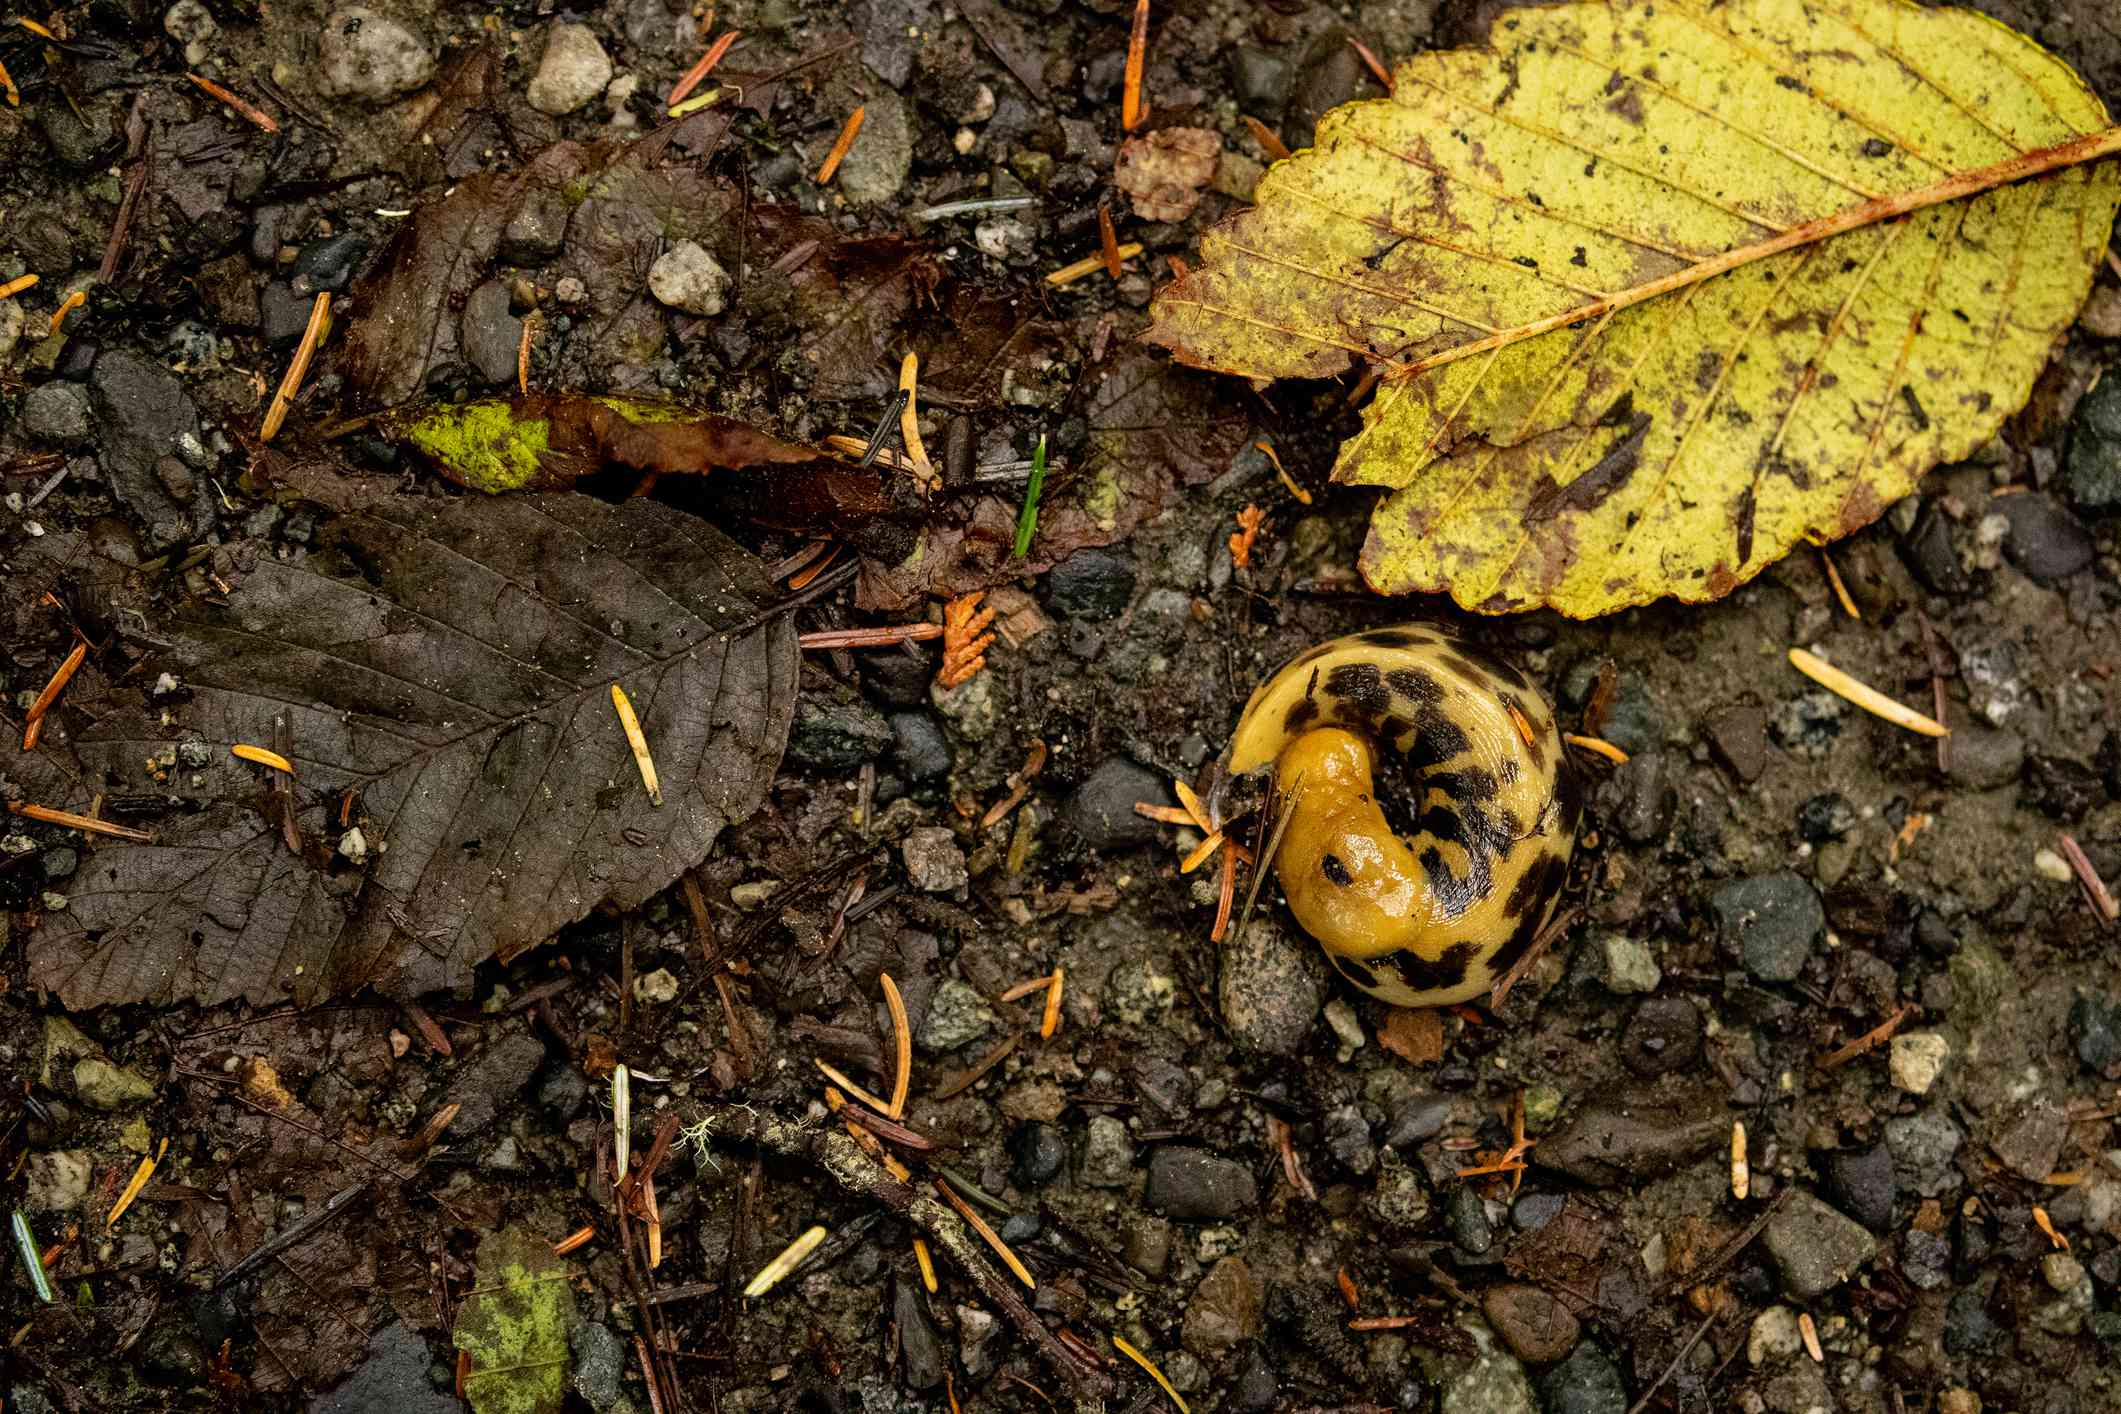 yellow banana slug with brown spots near a similarly colored leaf on the forest floor